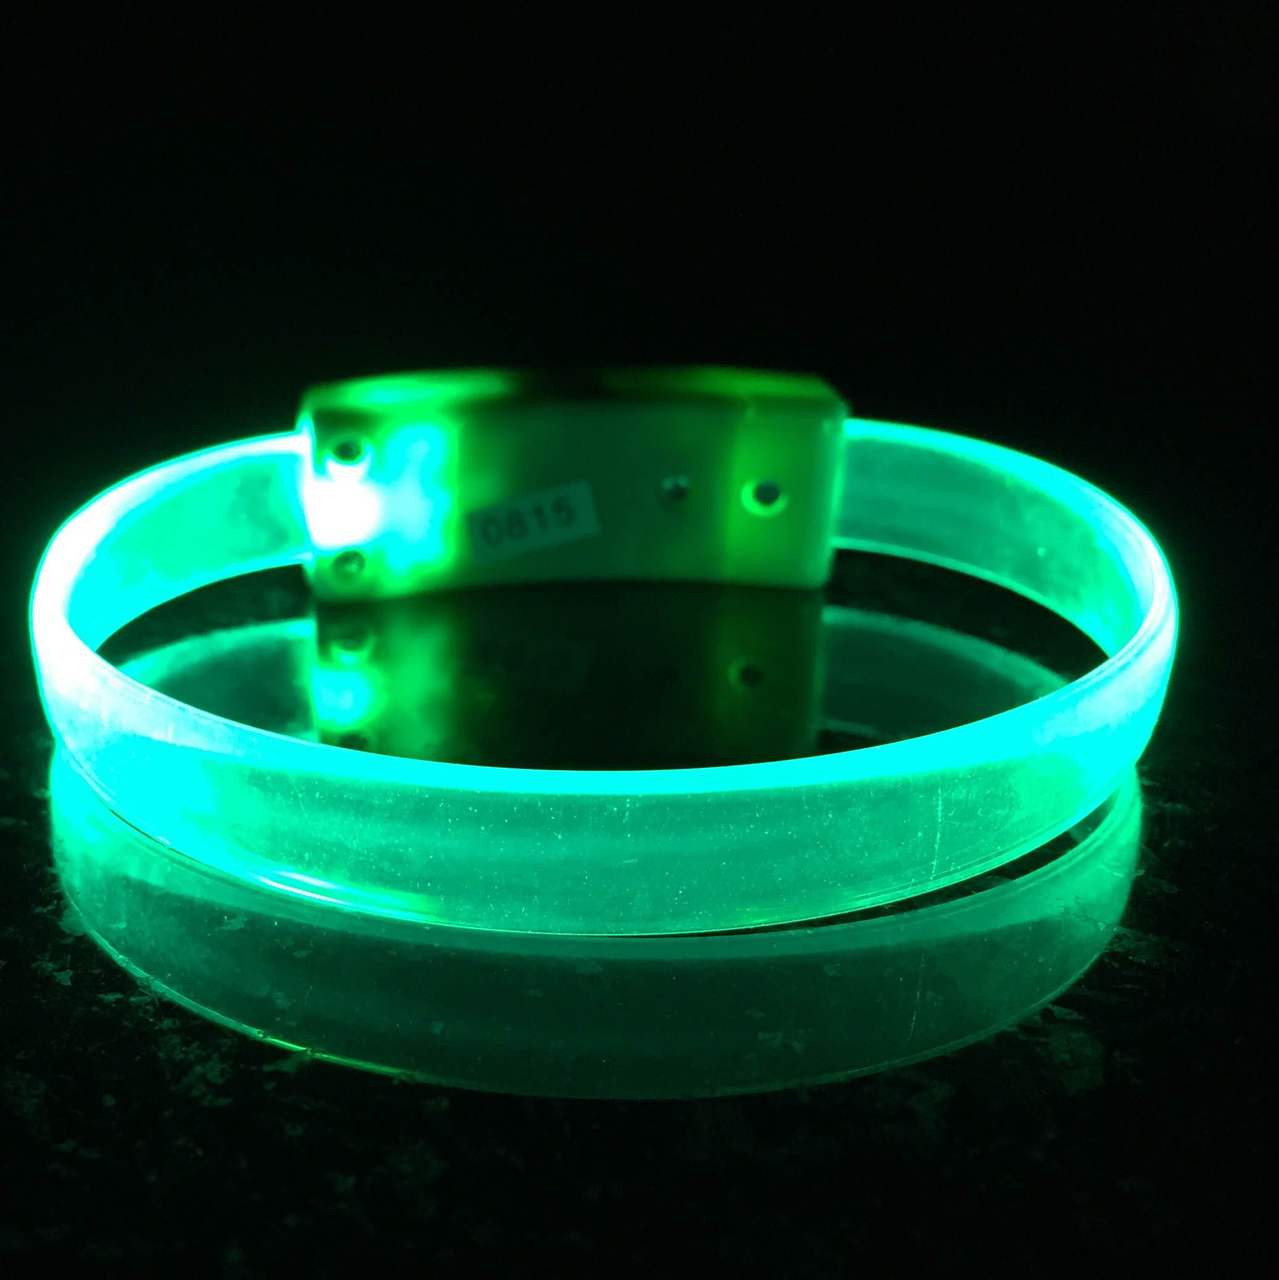 LED, Wristband, Glow, Bracelet, Light up, Silicon, LED Wristband, Nightclub, green